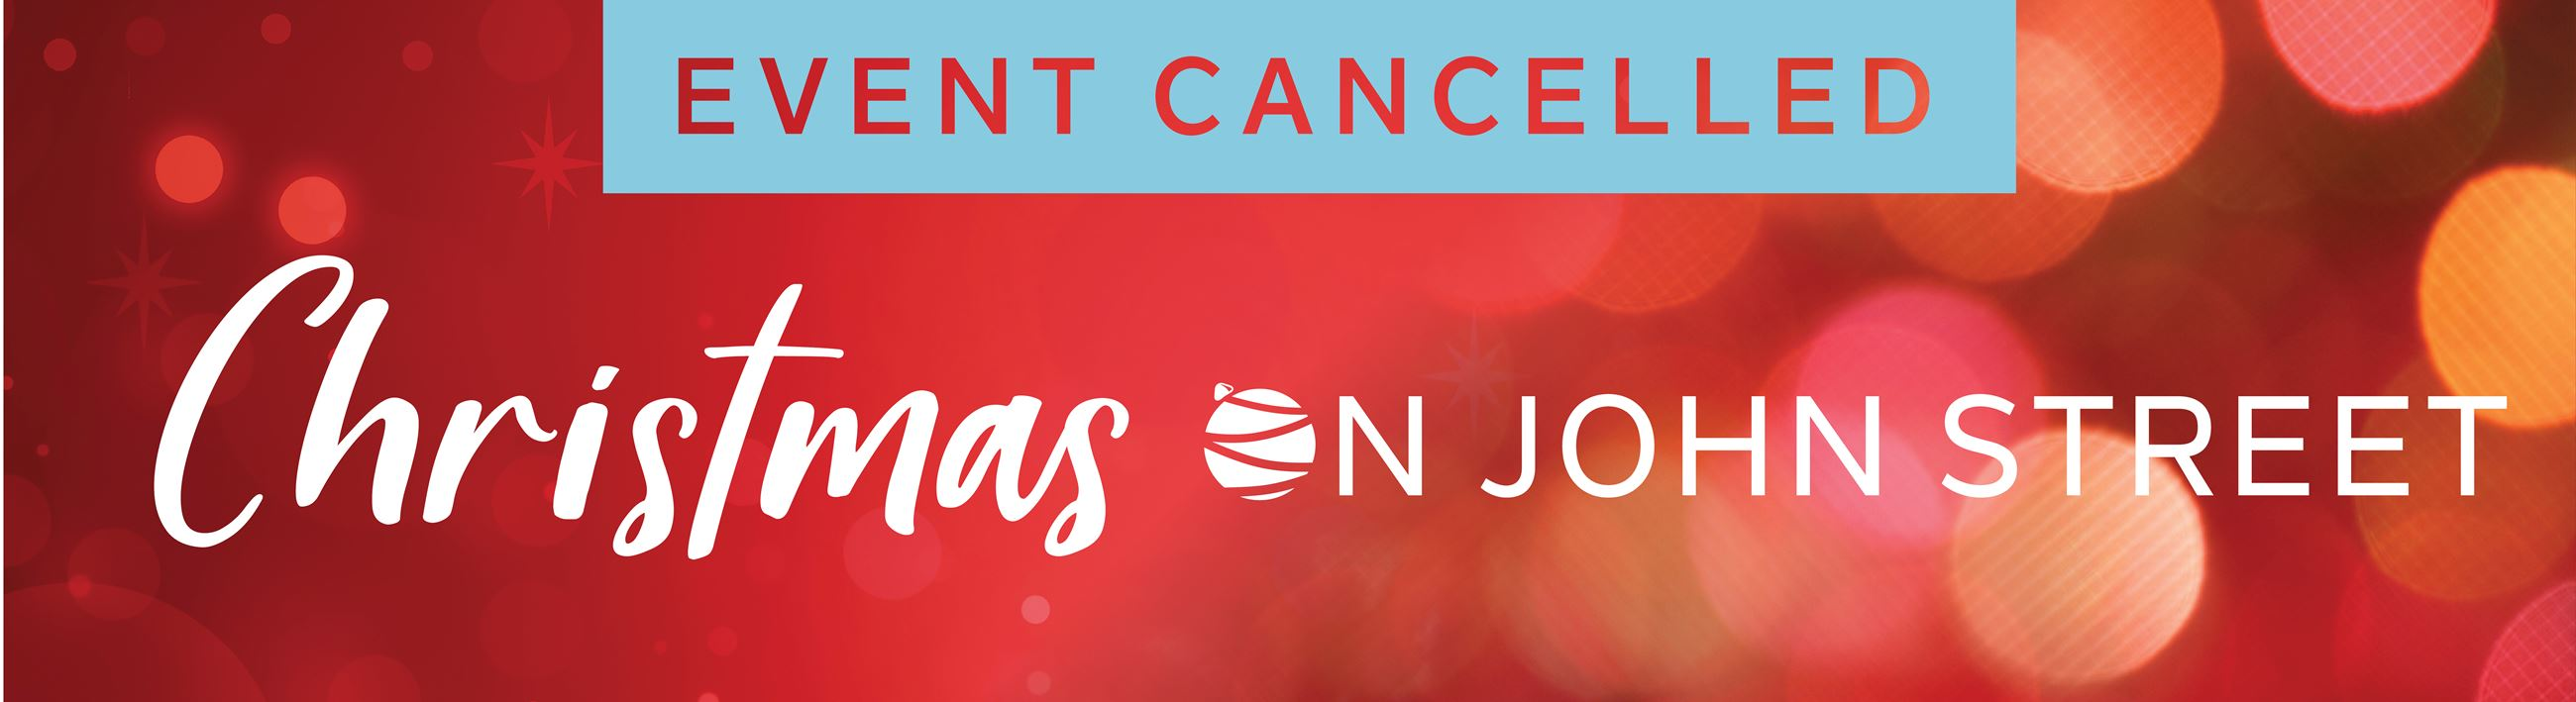 Christmas on John Street - Event Cancelled9